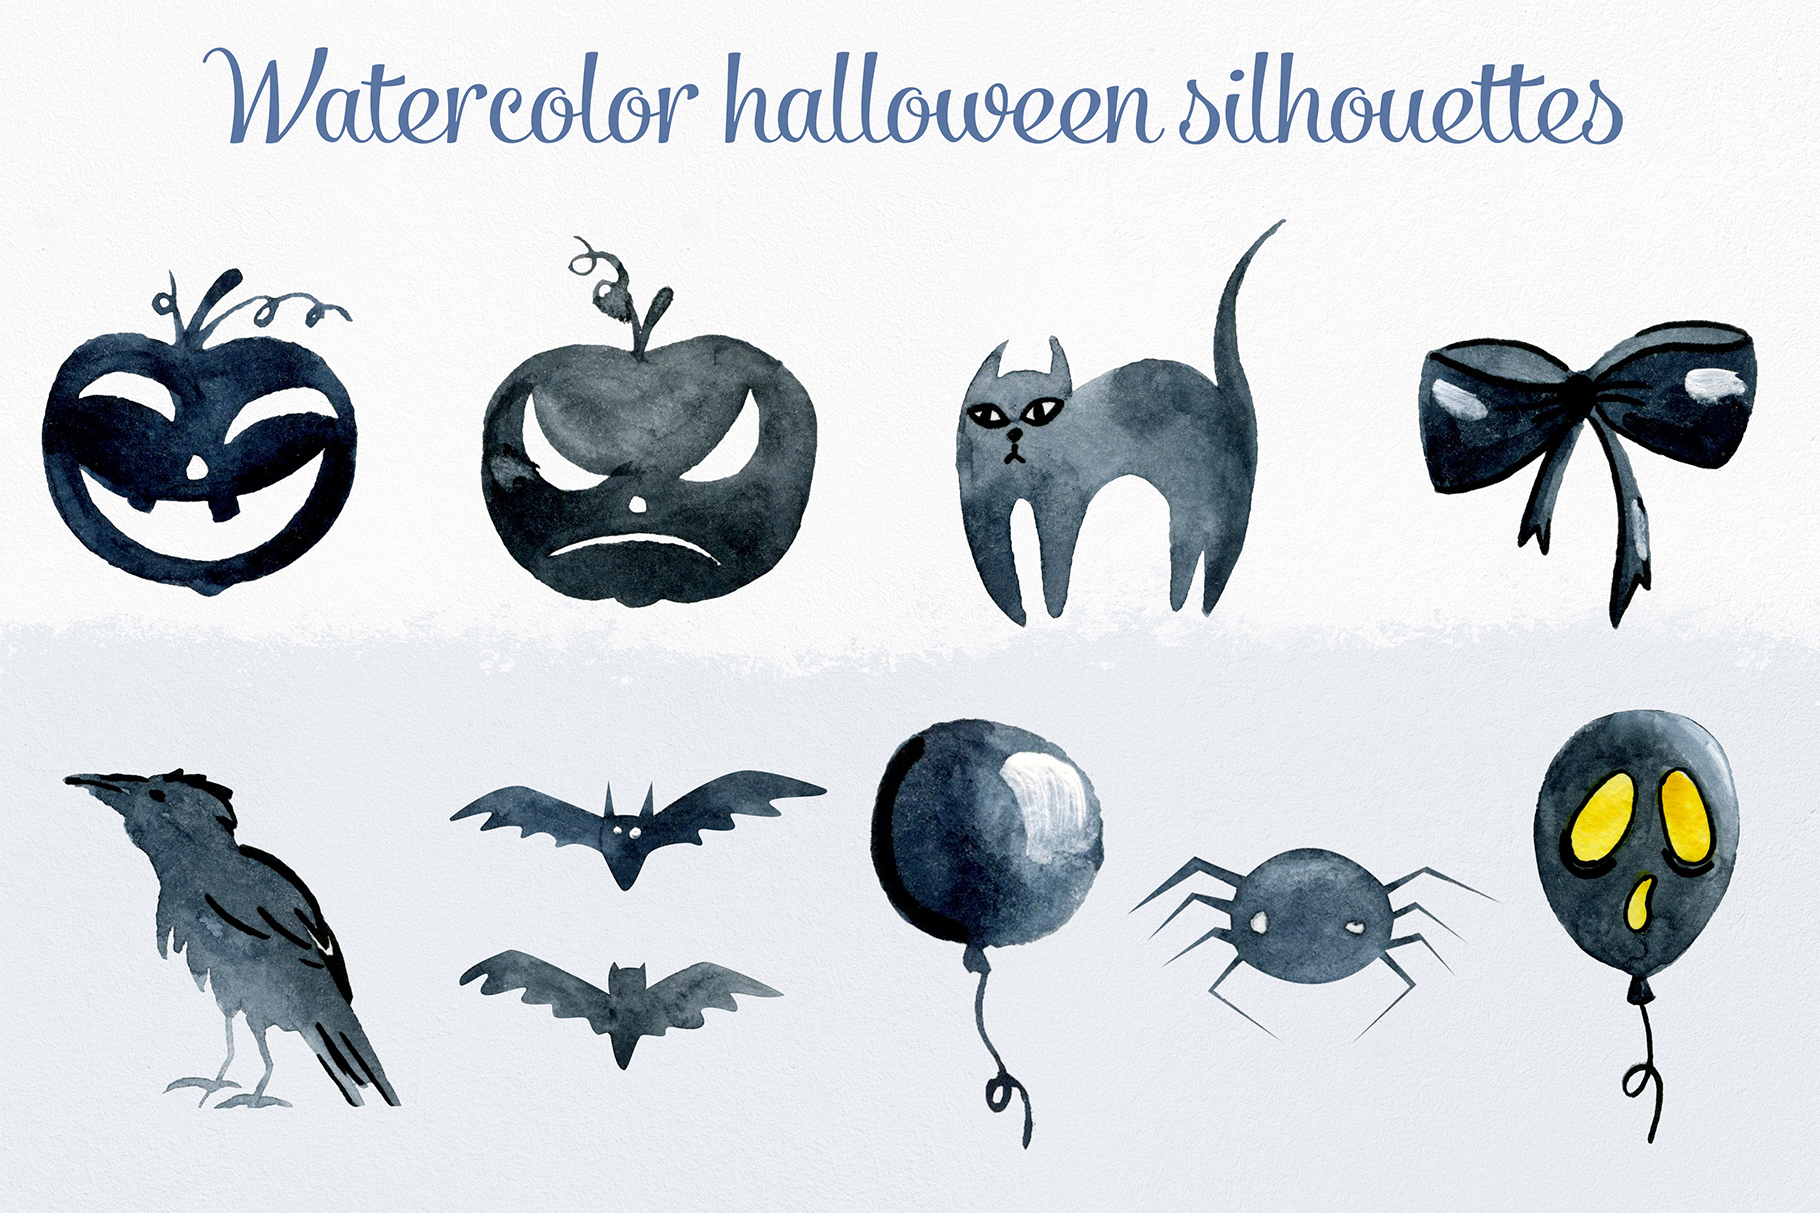 Watercolor halloween silhouettes example image 1